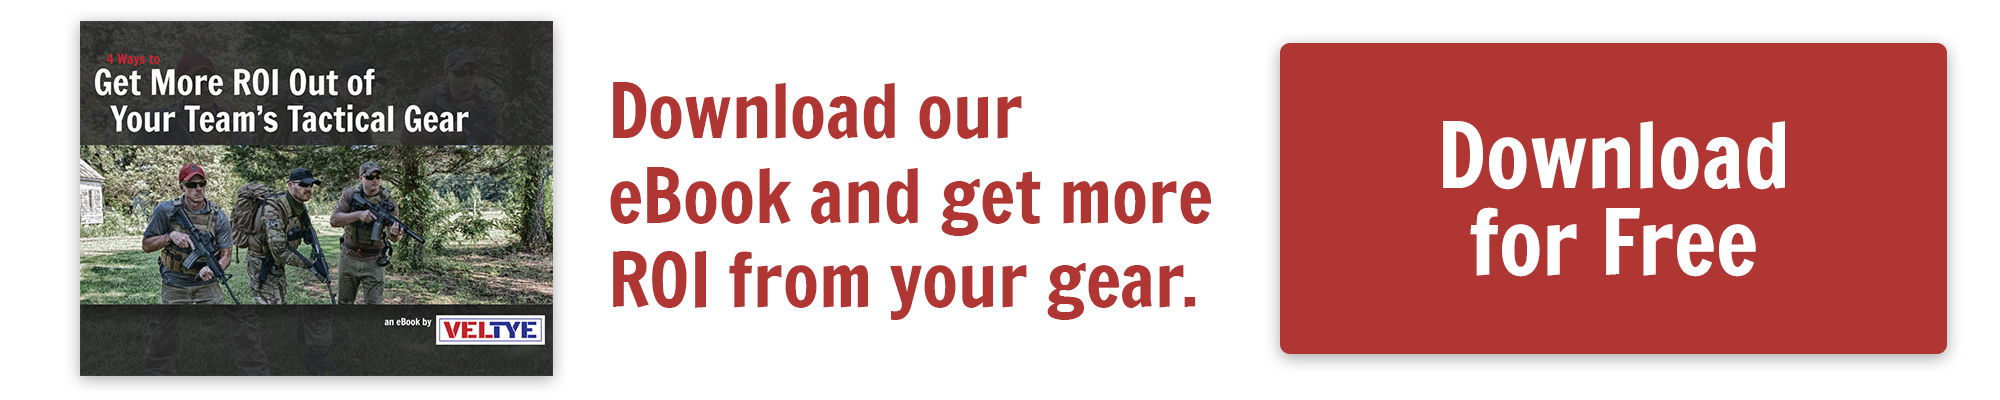 Get better ROI from tactical gear